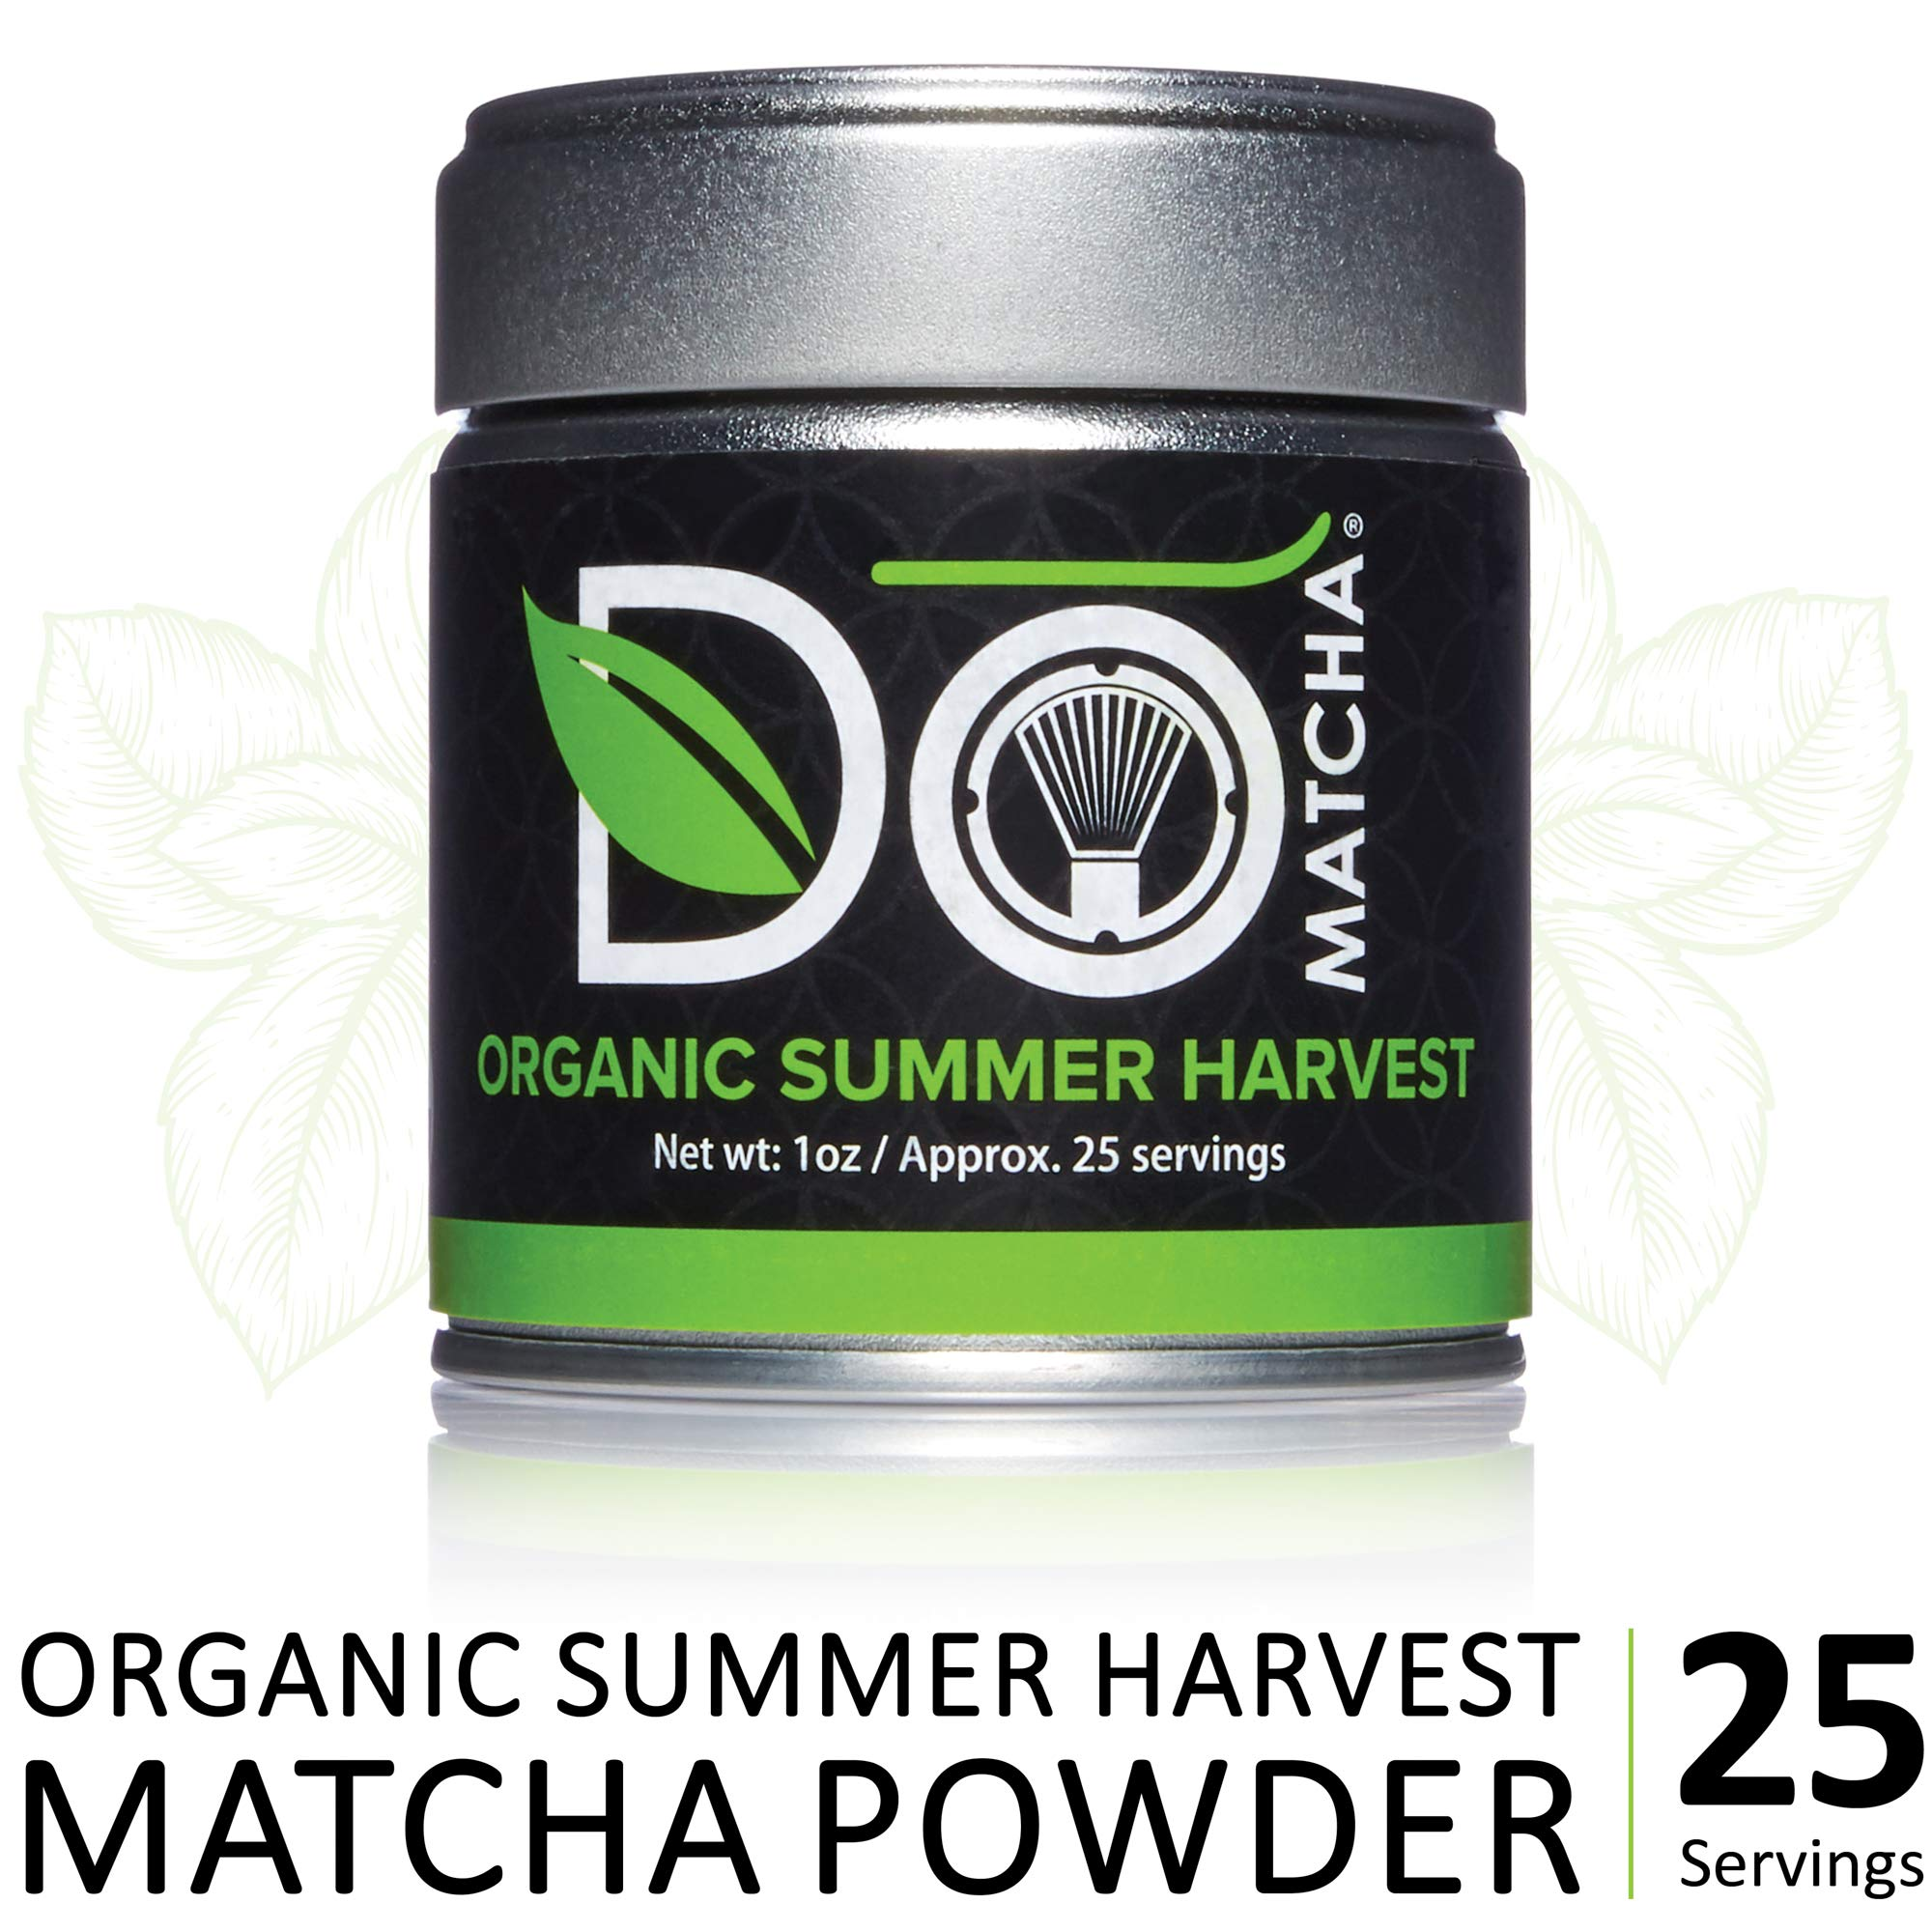 DoMatcha - Organic Summer Harvest Green Tea Matcha Powder, Natural Source of Antioxidants, Caffeine, and L-Theanine, Promotes Focus and Relaxation, 25 Servings (1 oz) by DoMatcha